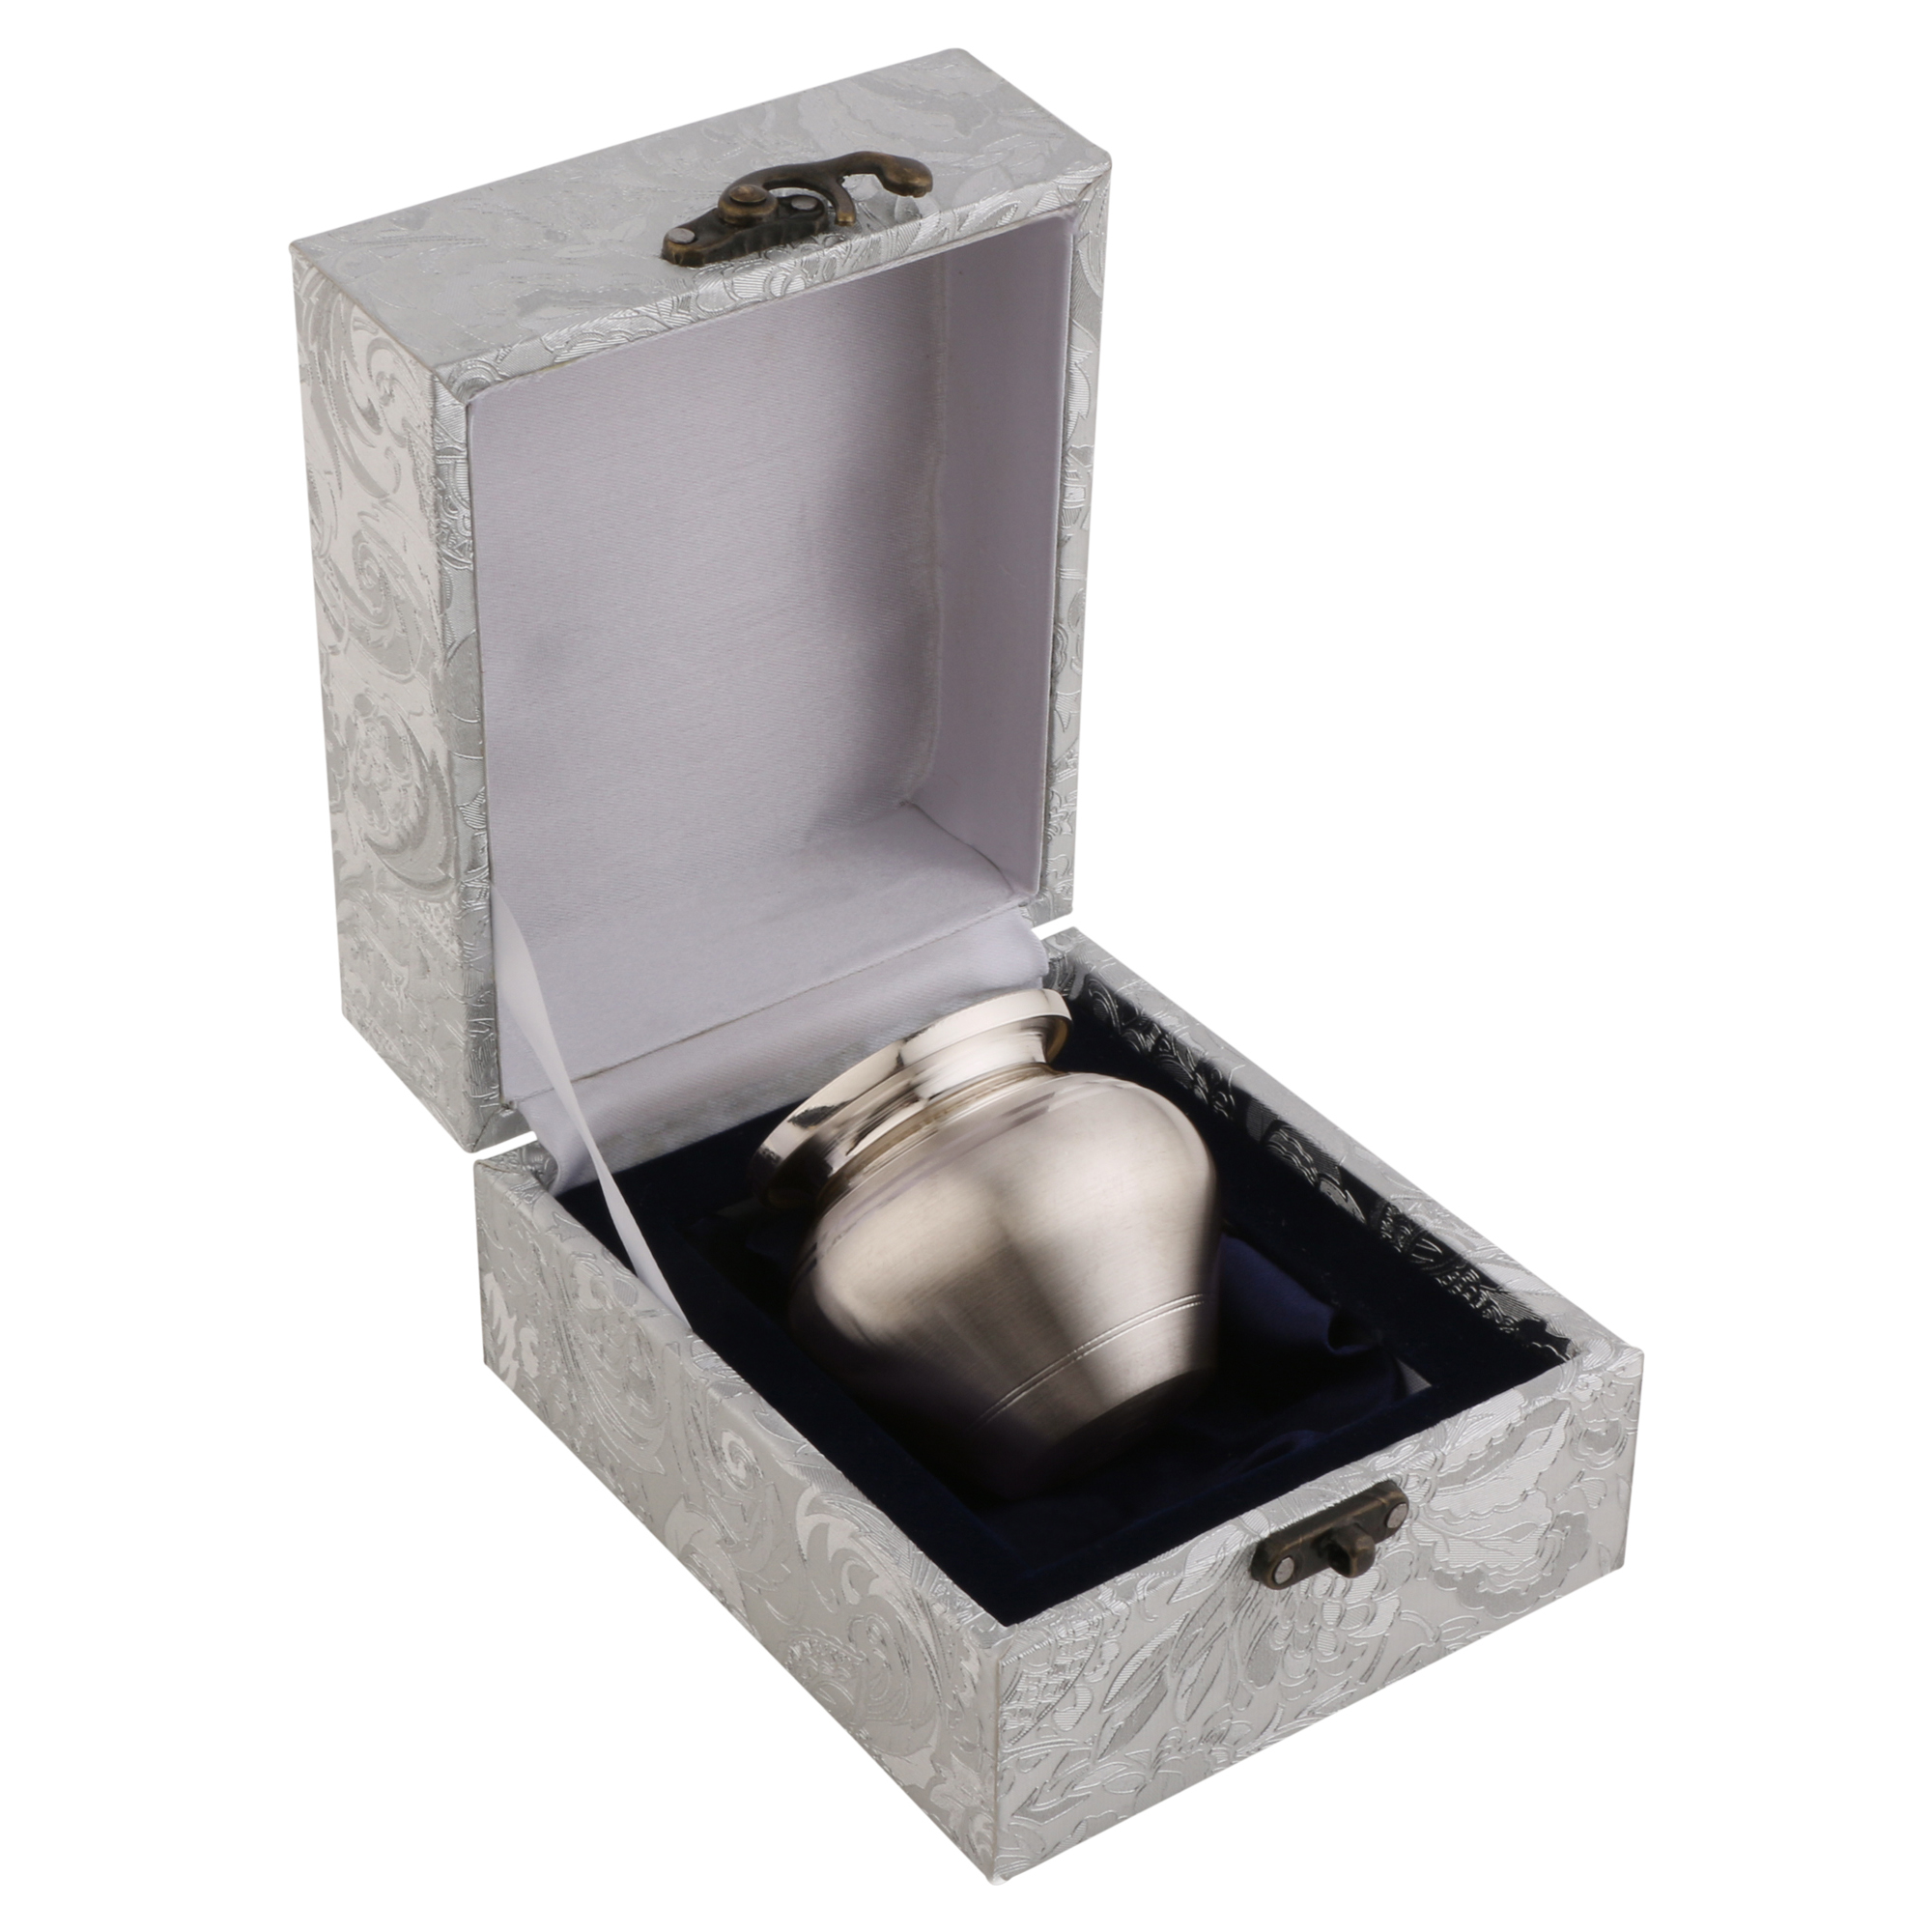 Kalash Small in Silver by Osasbazaar Packaging